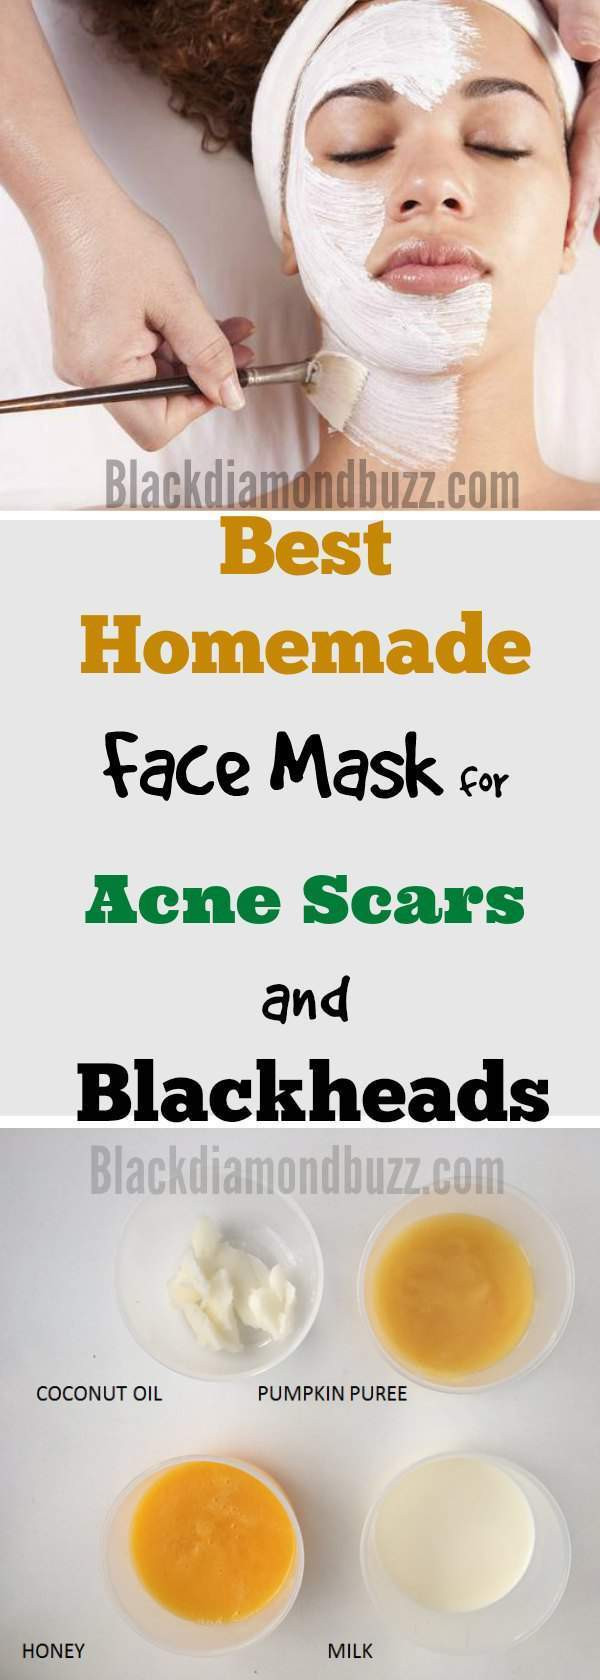 Best ideas about Acne Mask DIY . Save or Pin DIY Face Mask for Acne 7 Best Homemade Face Masks Now.